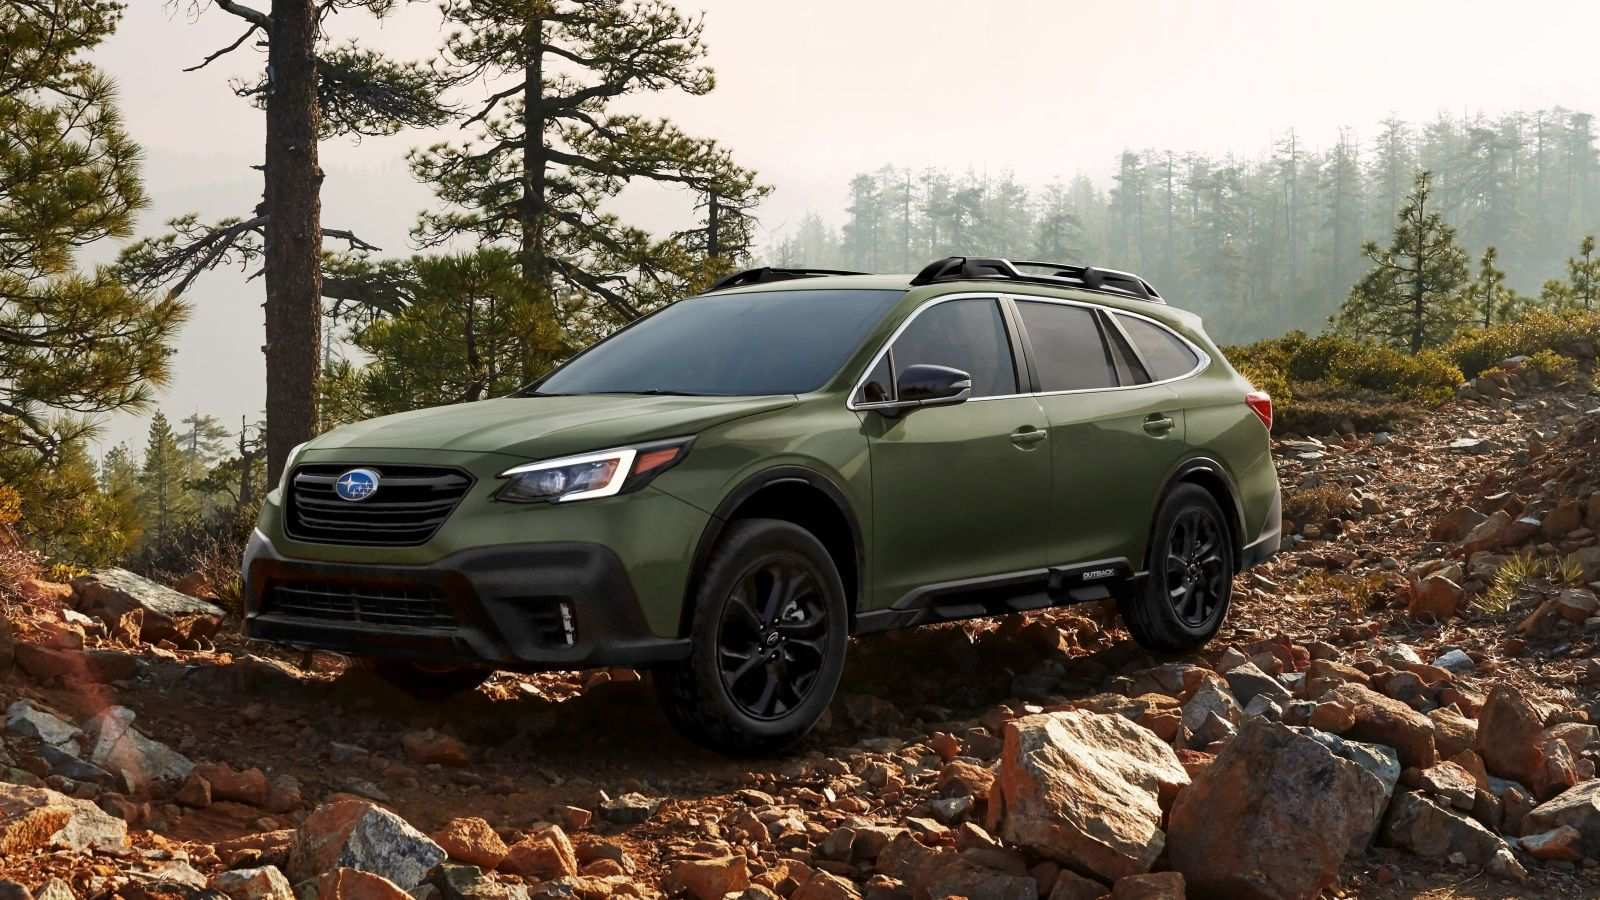 78 New 2020 Subaru Outback Jalopnik Wallpaper for 2020 Subaru Outback Jalopnik